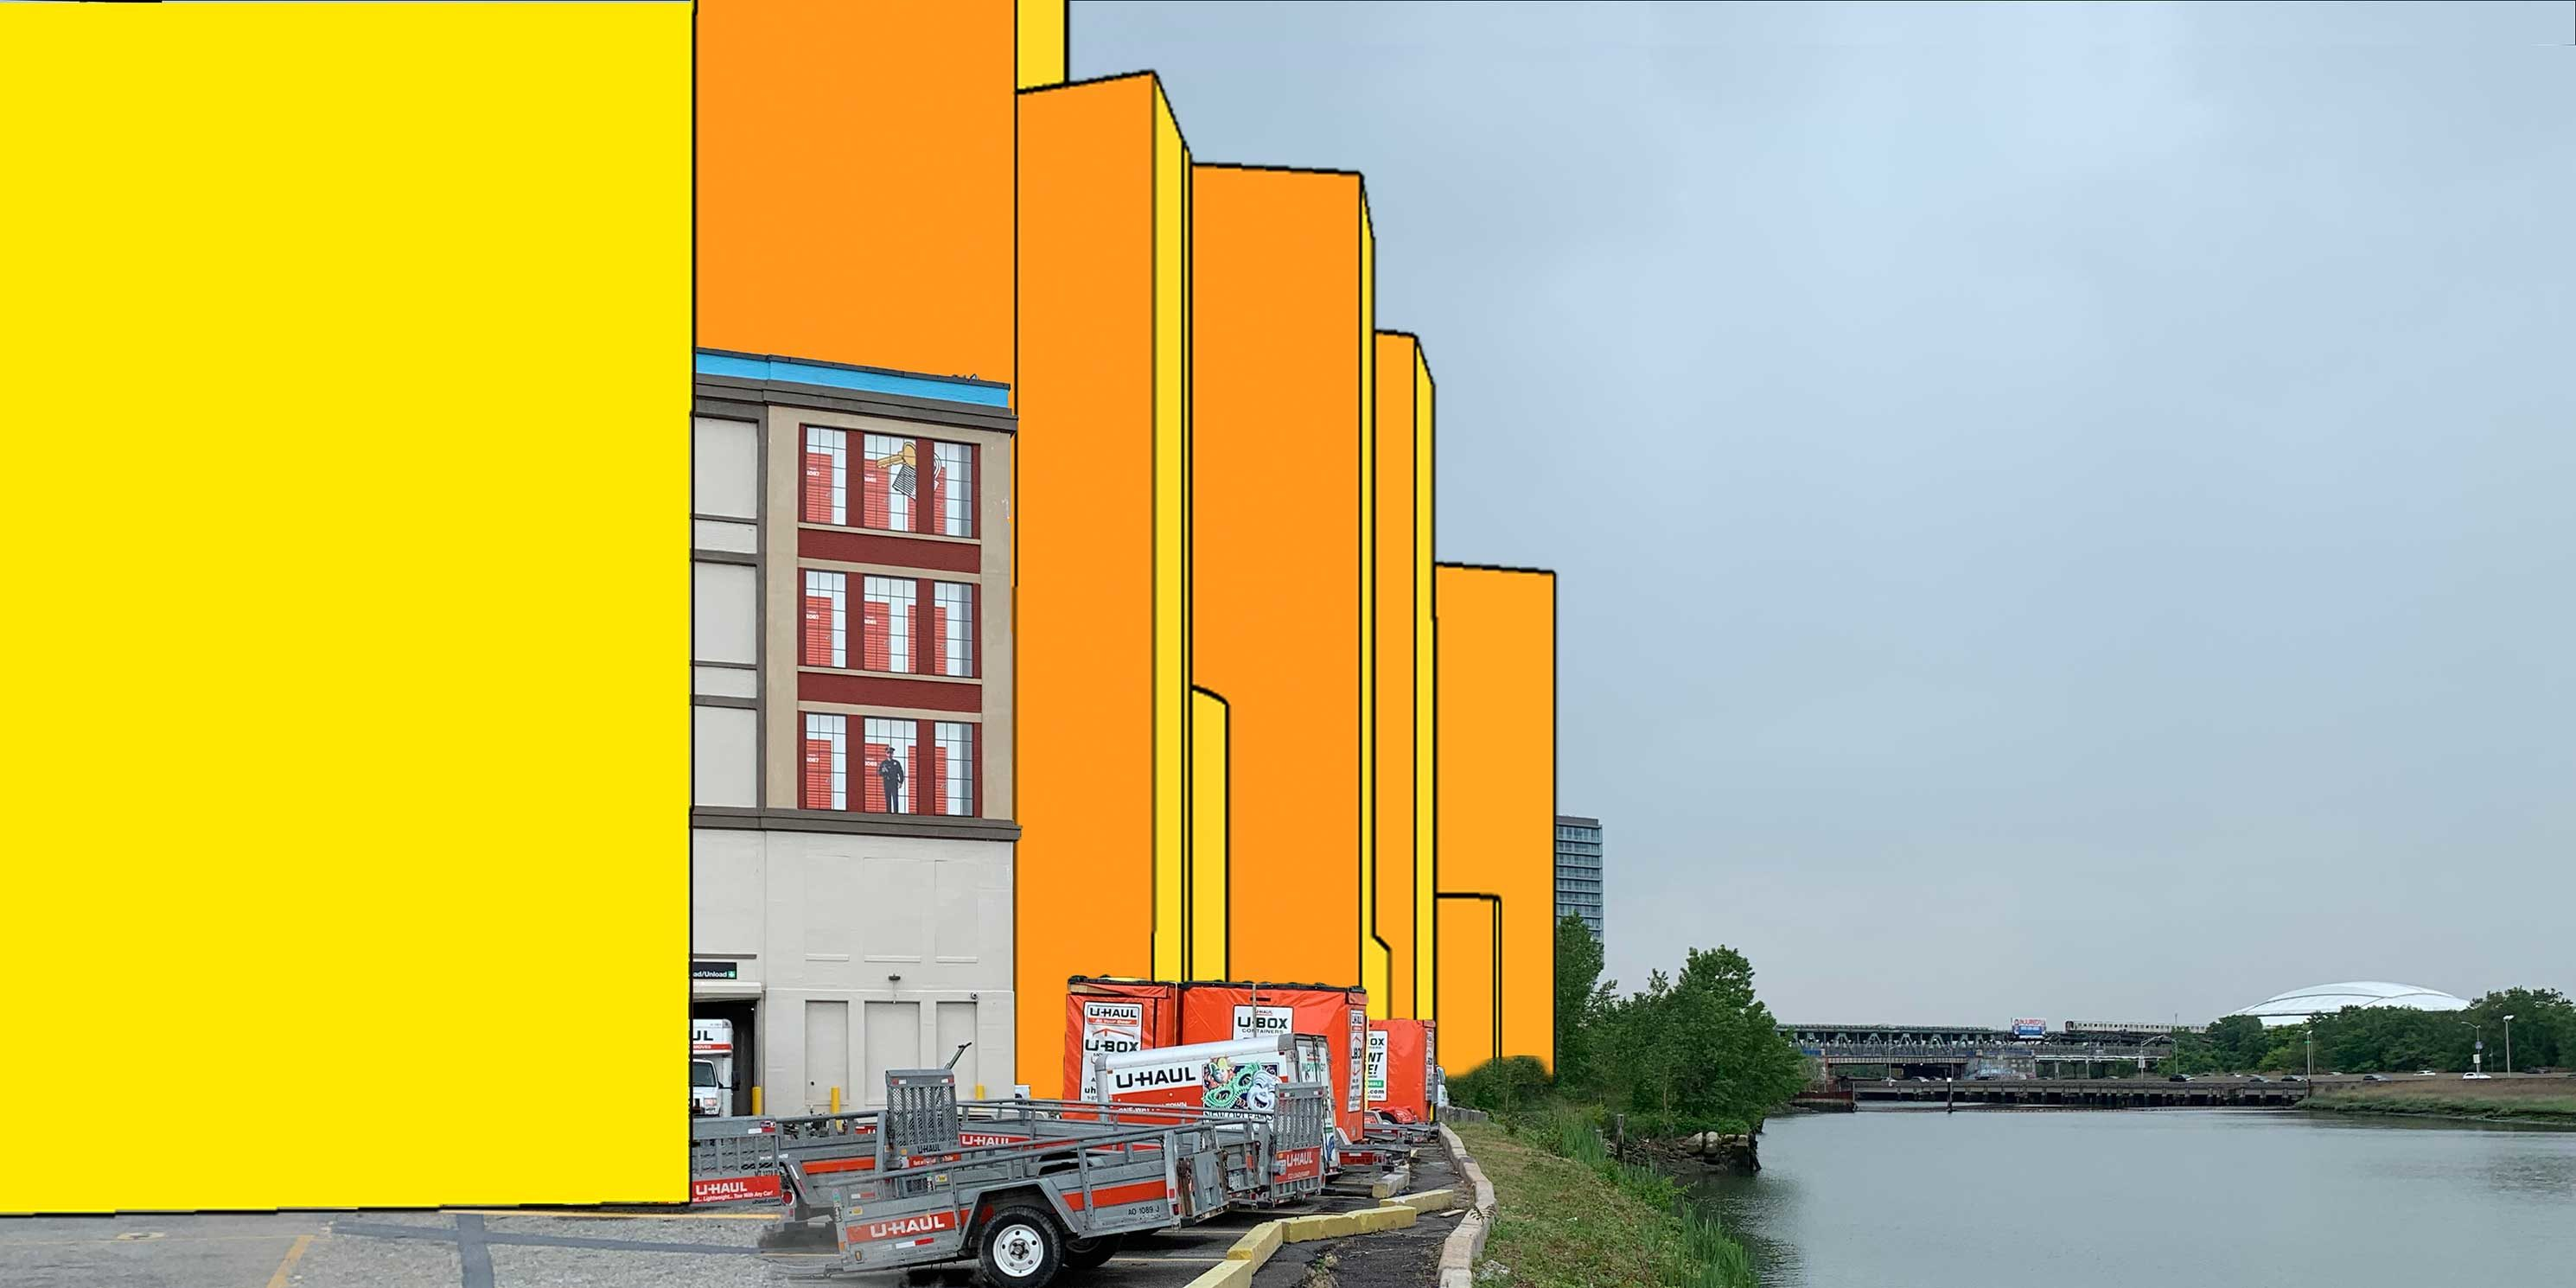 proposed and potential development along Flushing Creek in Flushing, Queens